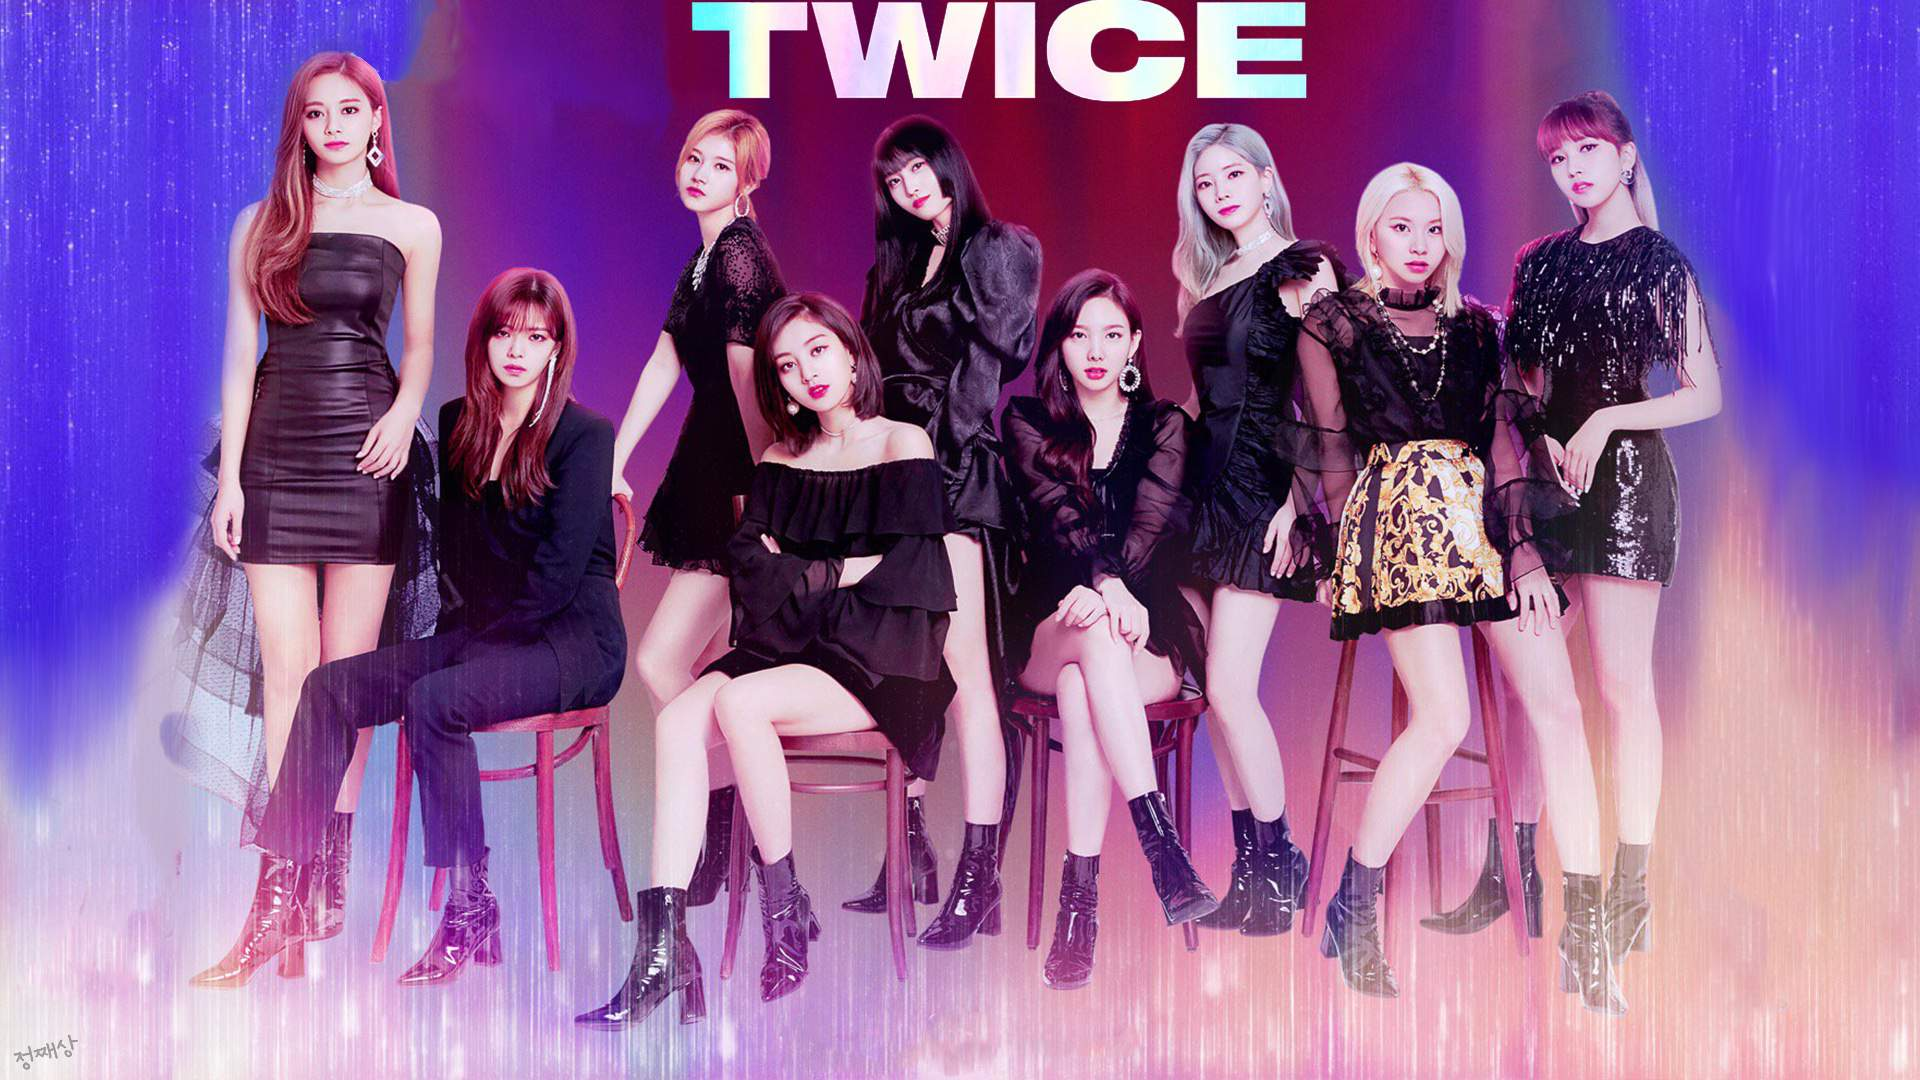 Twice More And More Wallpapers Wallpaper Cave